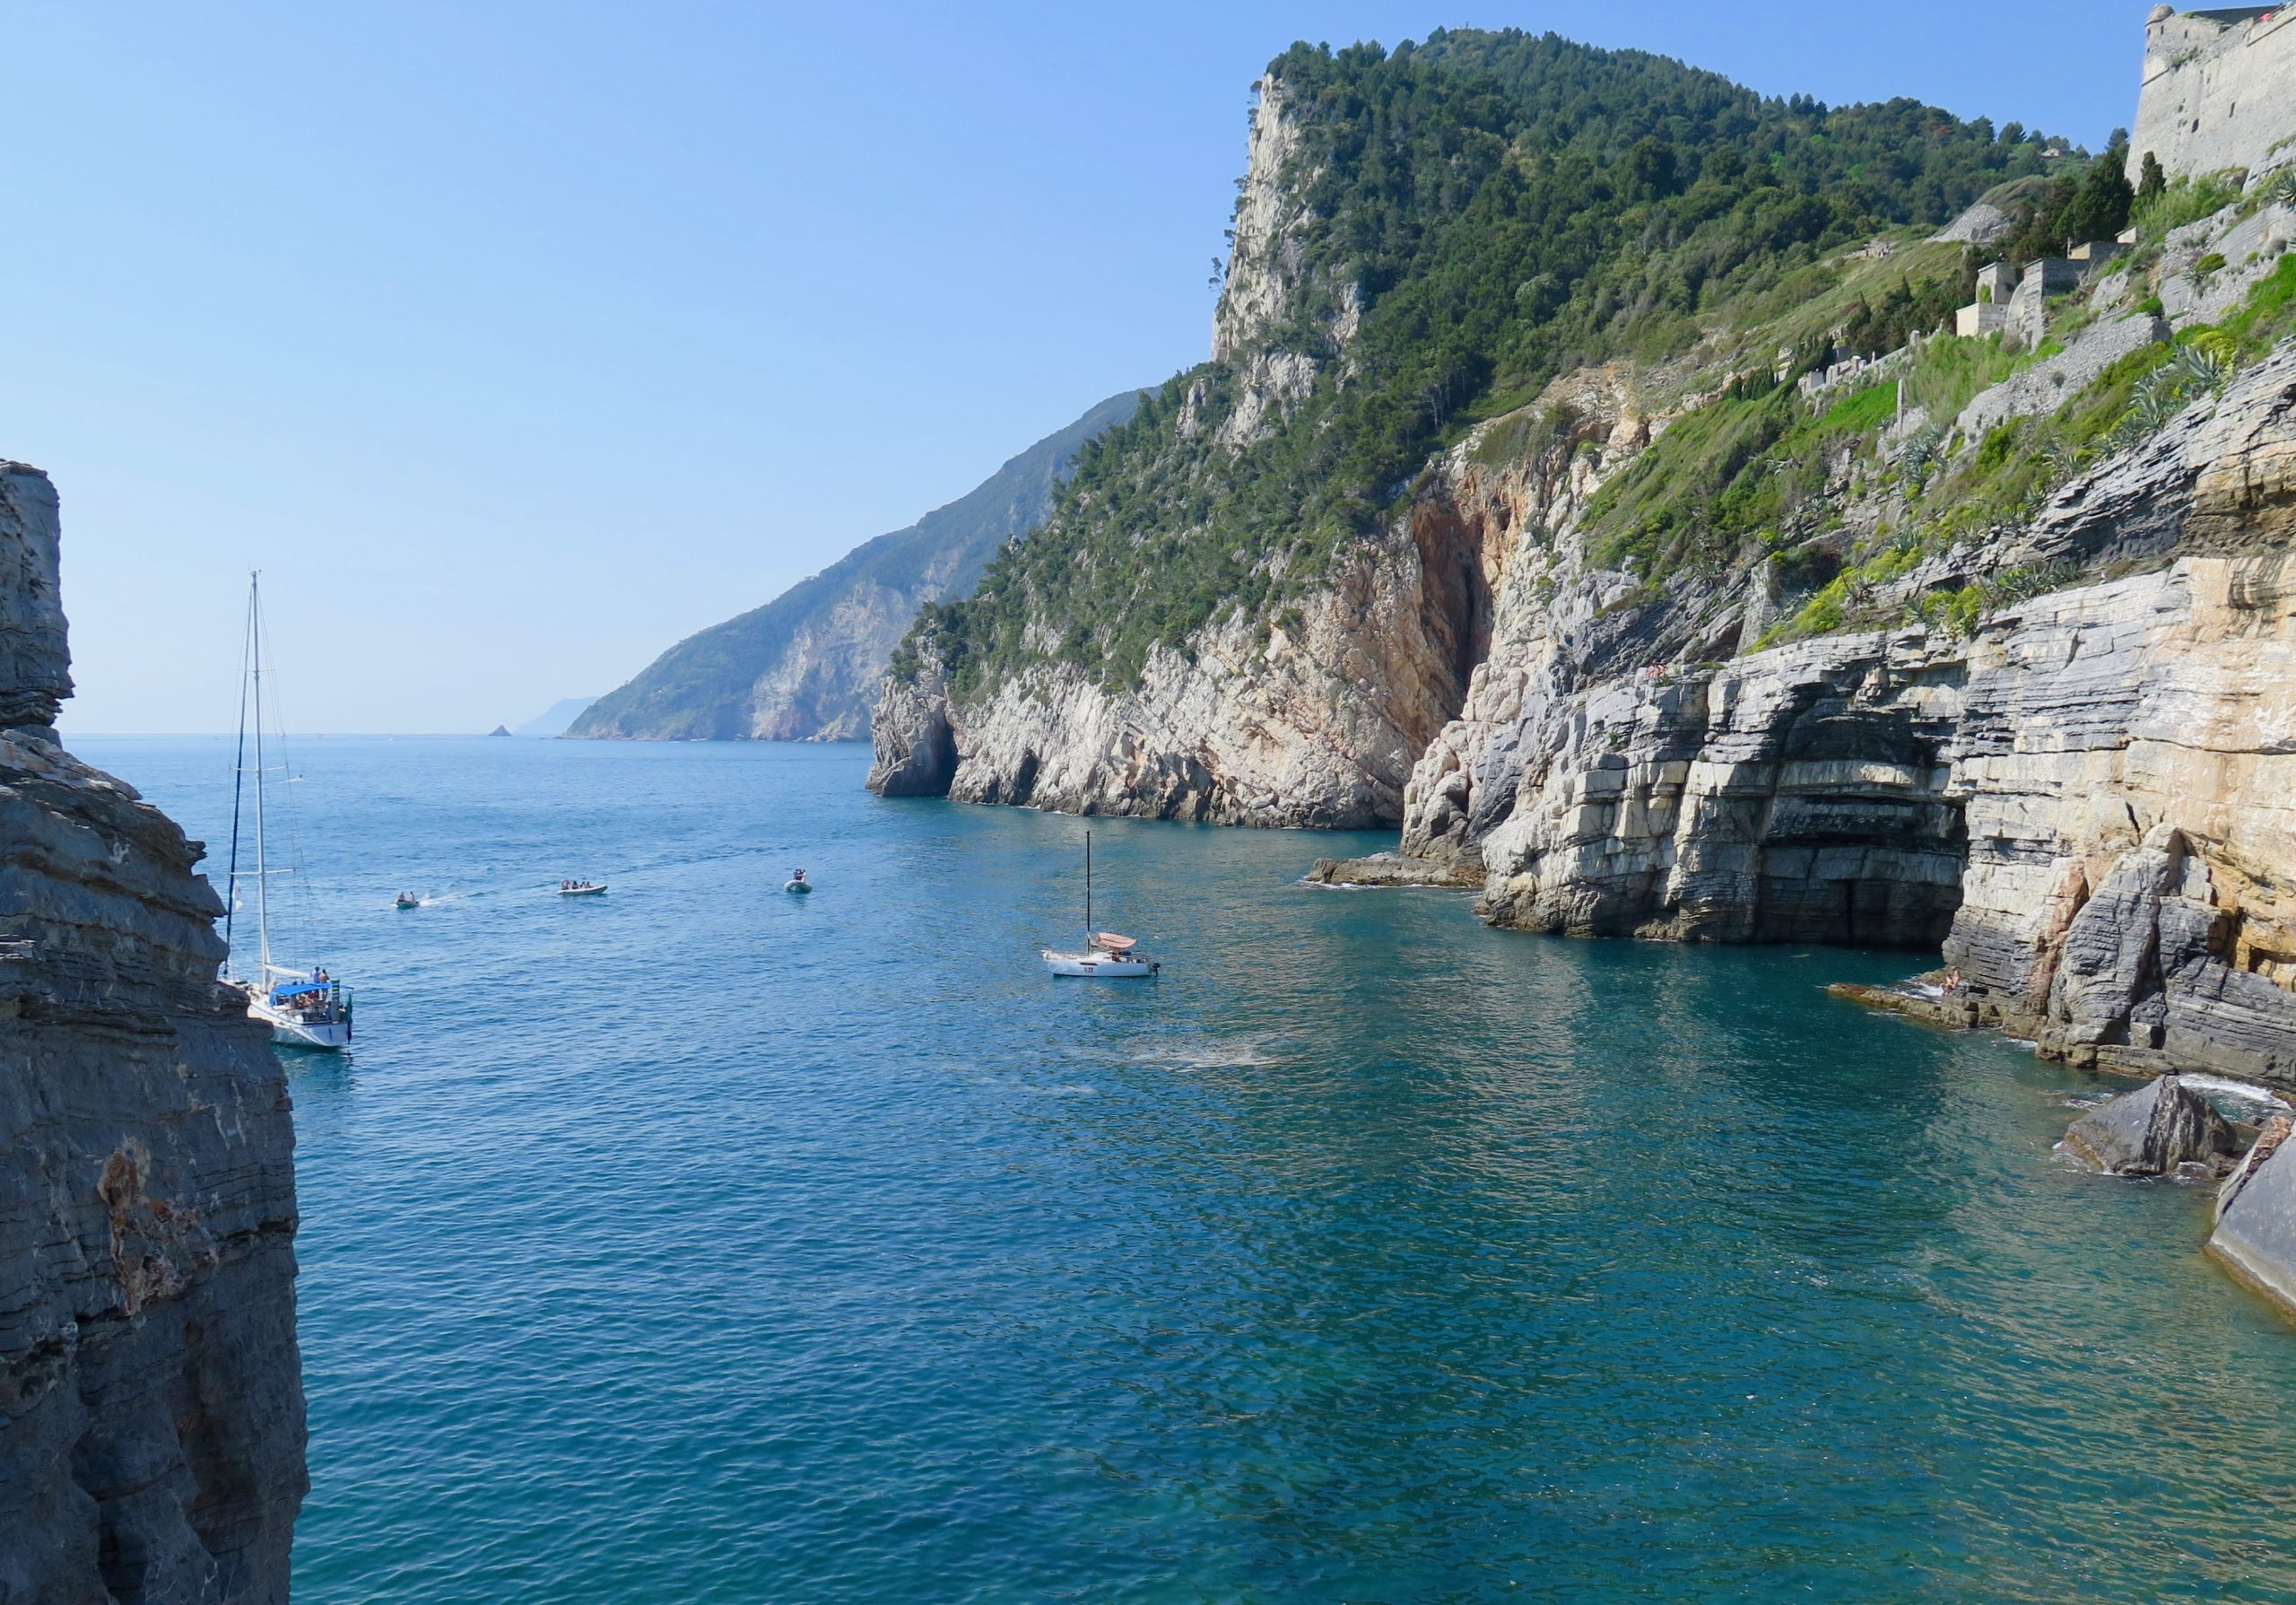 The turquoise Mediterranean Sea of Italy's Cinque Terre – one of the most popular vacation spots for Italy's Ferragosto holiday.